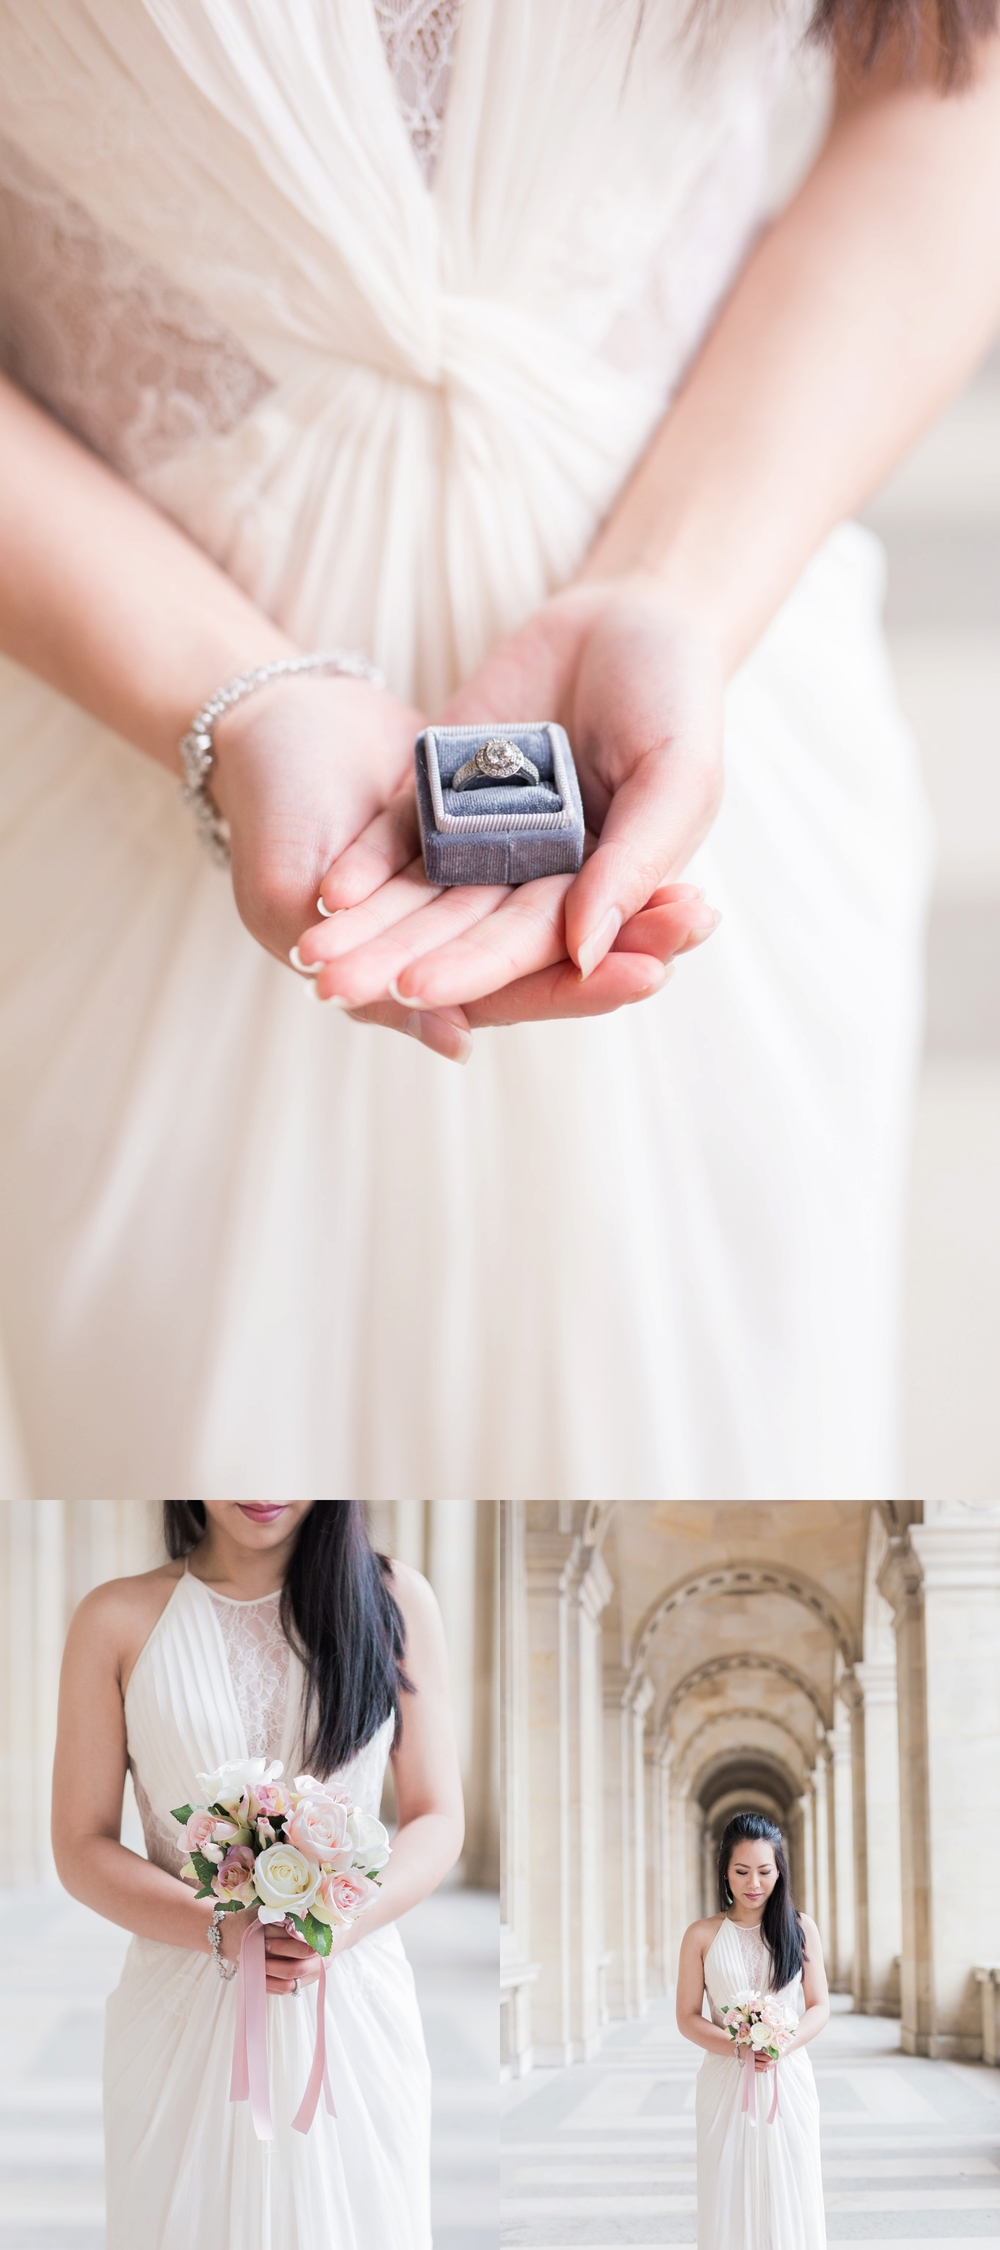 Suzanne_li_photography_paris_engagement_shoot_0013.jpg